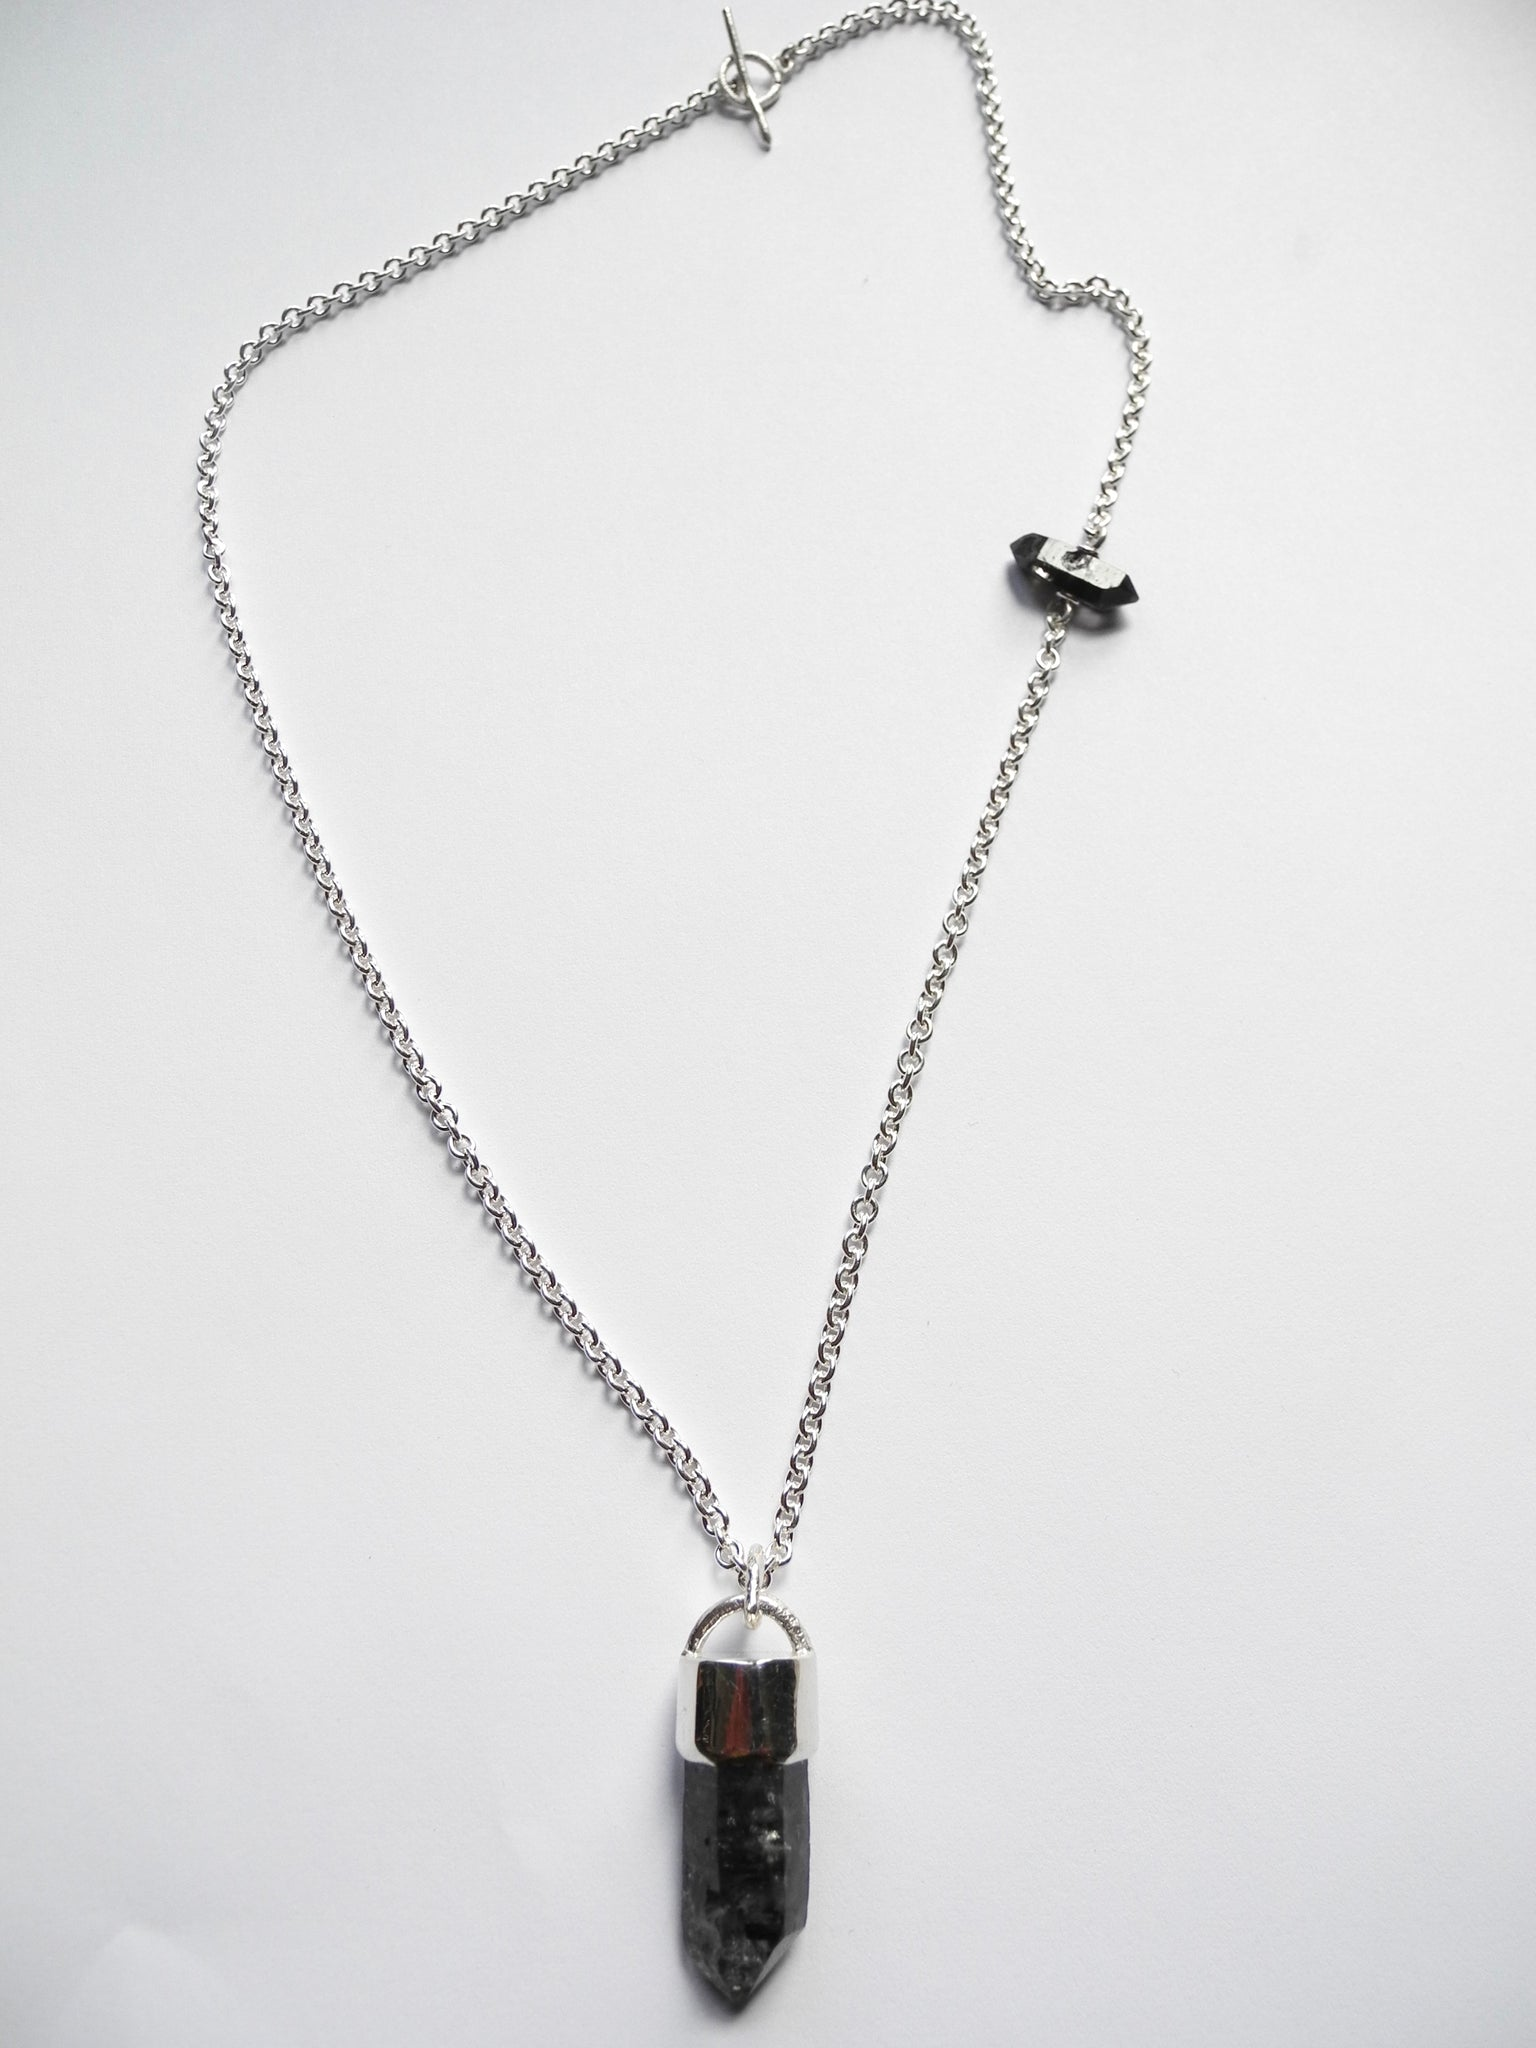 higher-self necklace